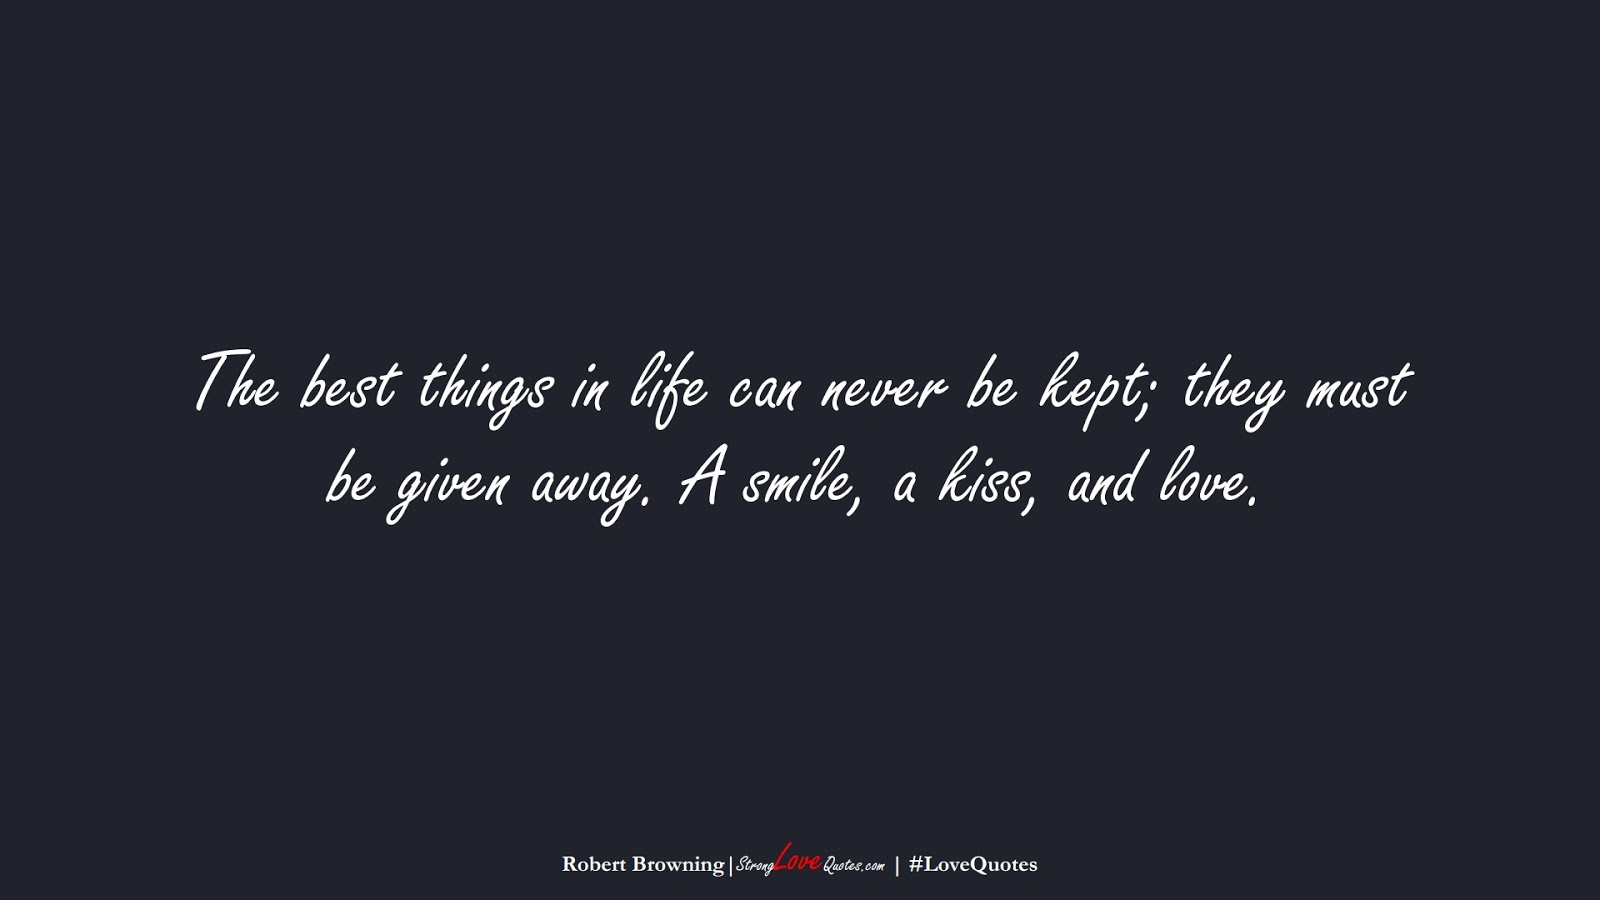 The best things in life can never be kept; they must be given away. A smile, a kiss, and love. (Robert Browning);  #LoveQuotes